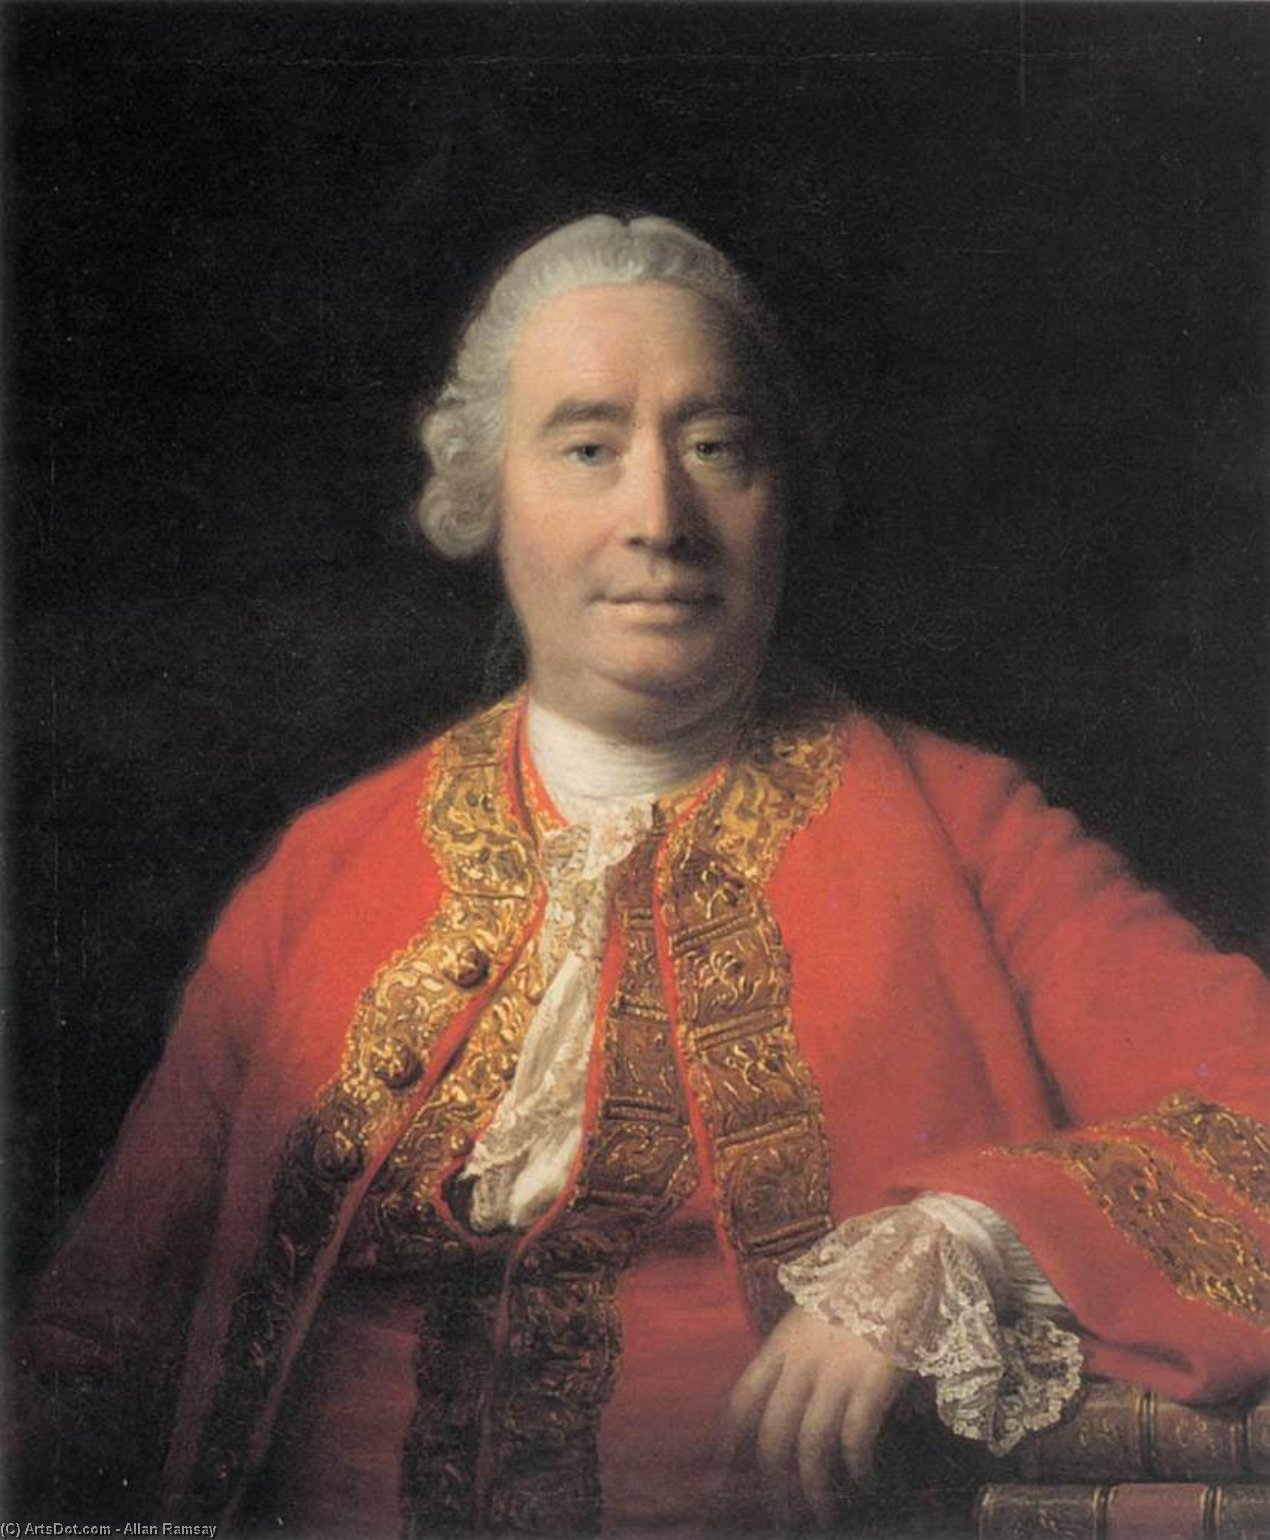 Wikioo.org - The Encyclopedia of Fine Arts - Painting, Artwork by Allan Ramsay - Portrait of David Hume